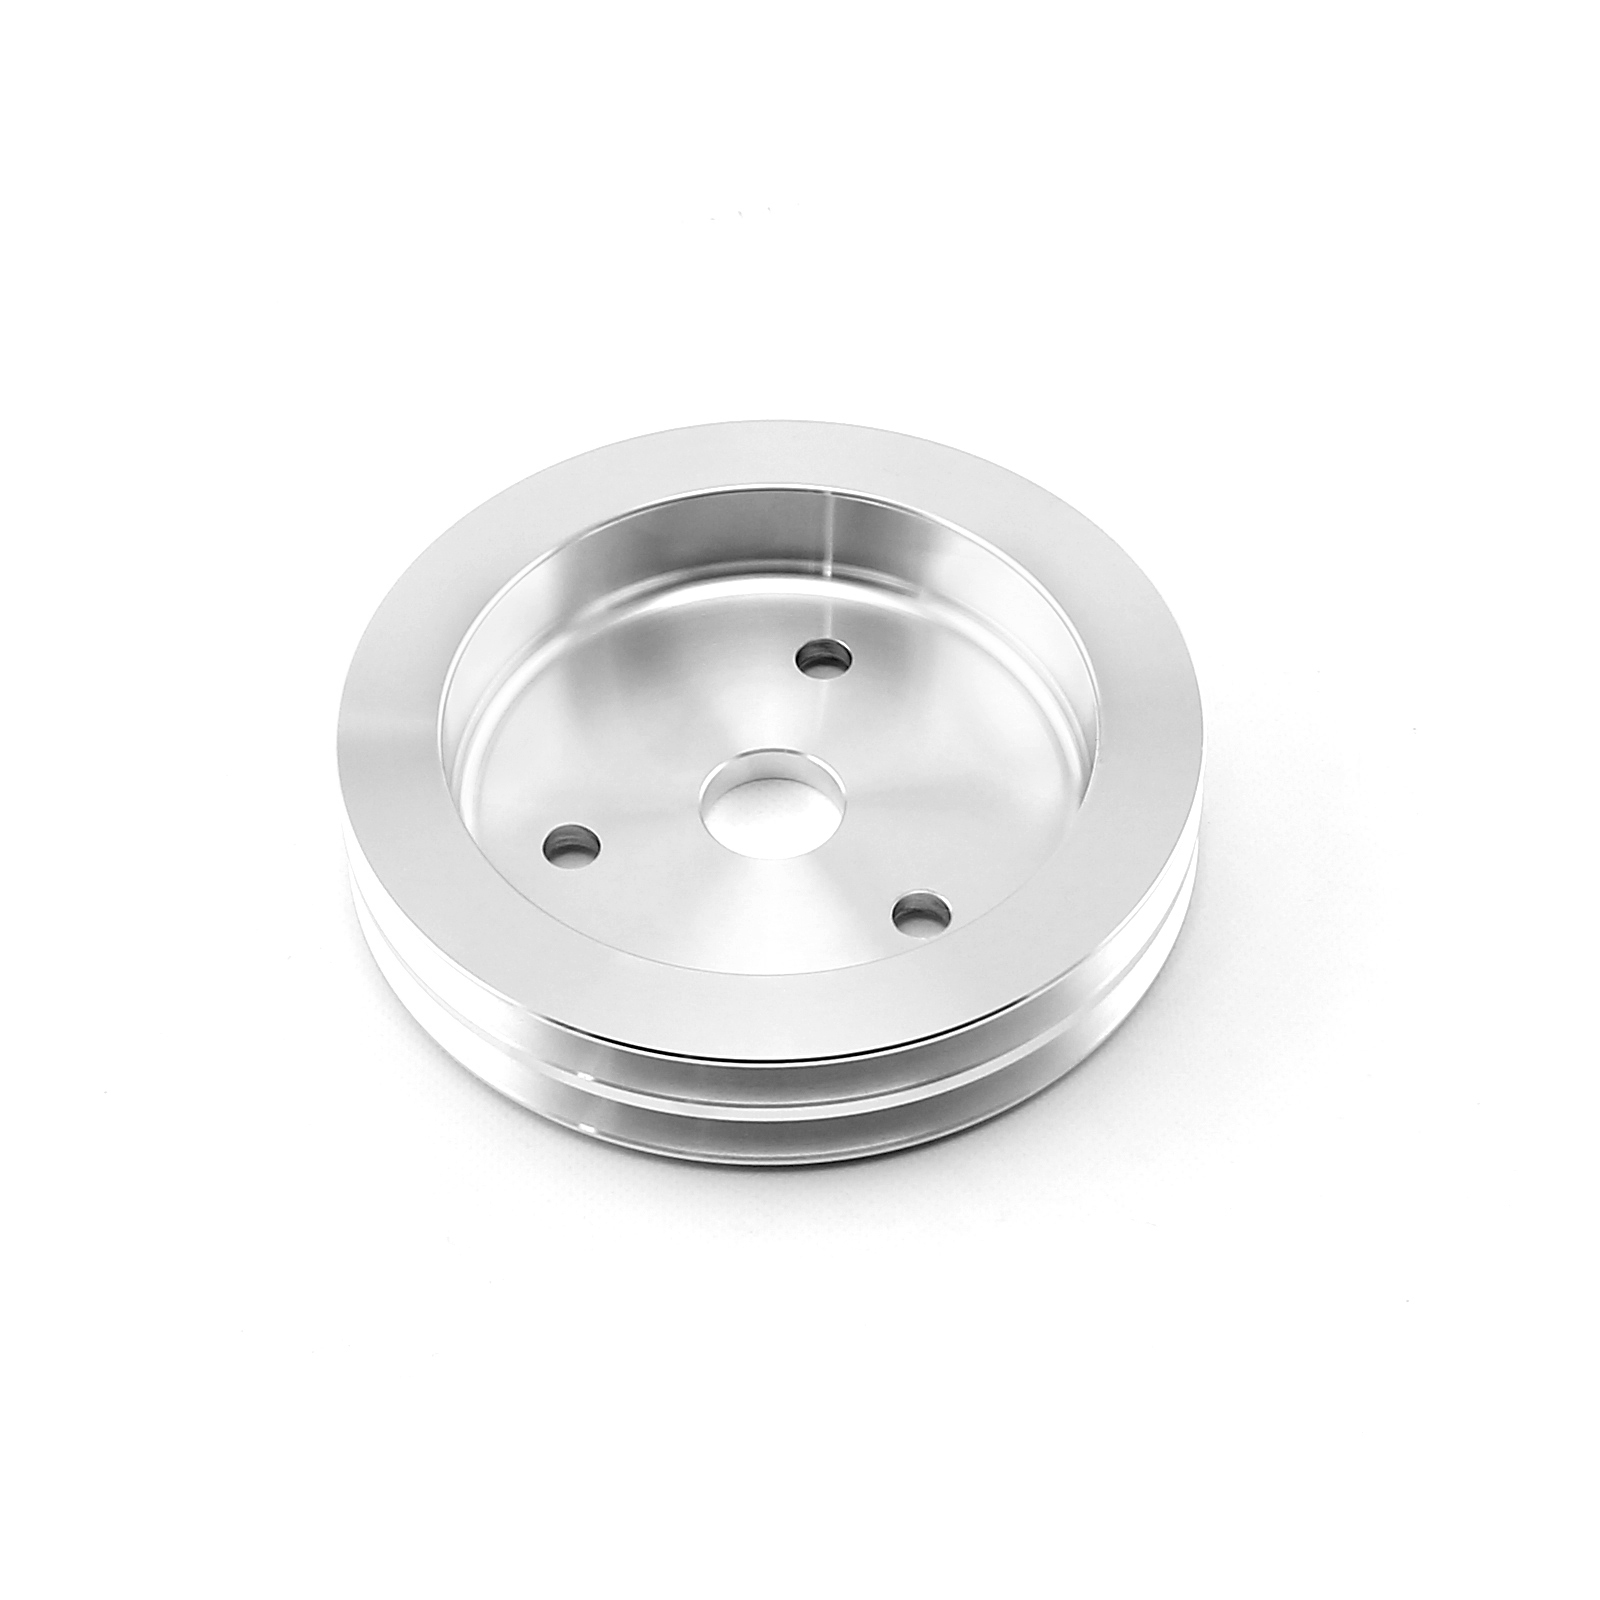 Chevy SBC 350 Billet Aluminum Short Water Pump Swp 2 Groove Crank Pulley